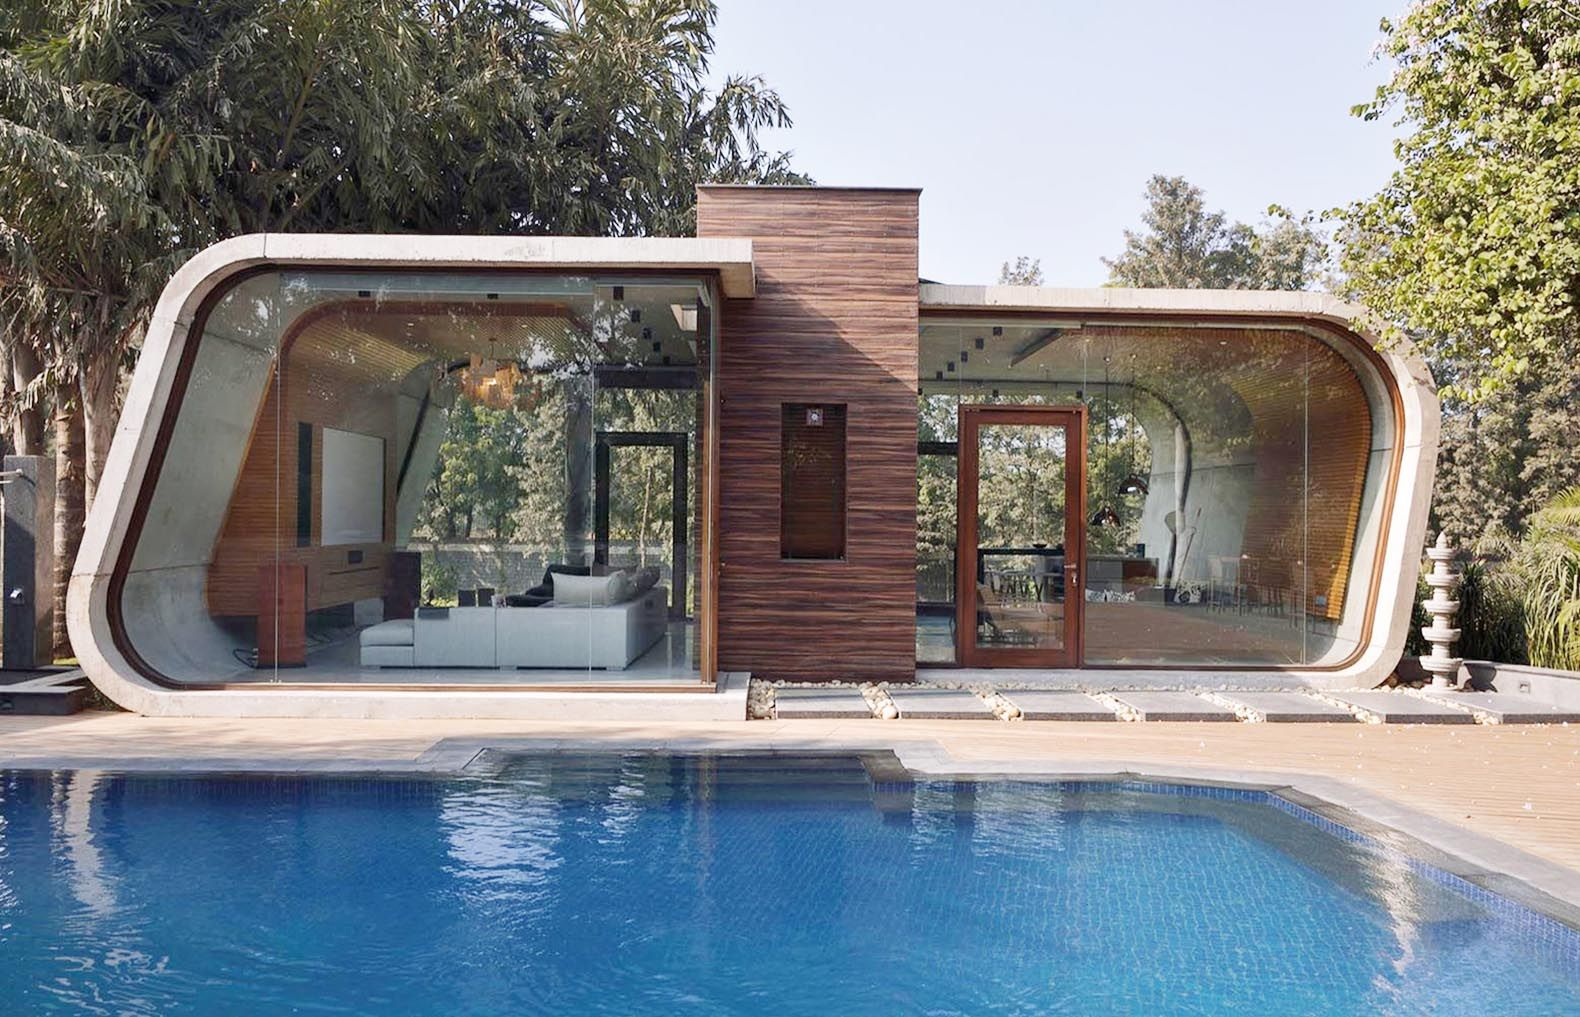 Design House Pools 42mm architectures sculptural pool house in india is wrapped a curved concrete shell